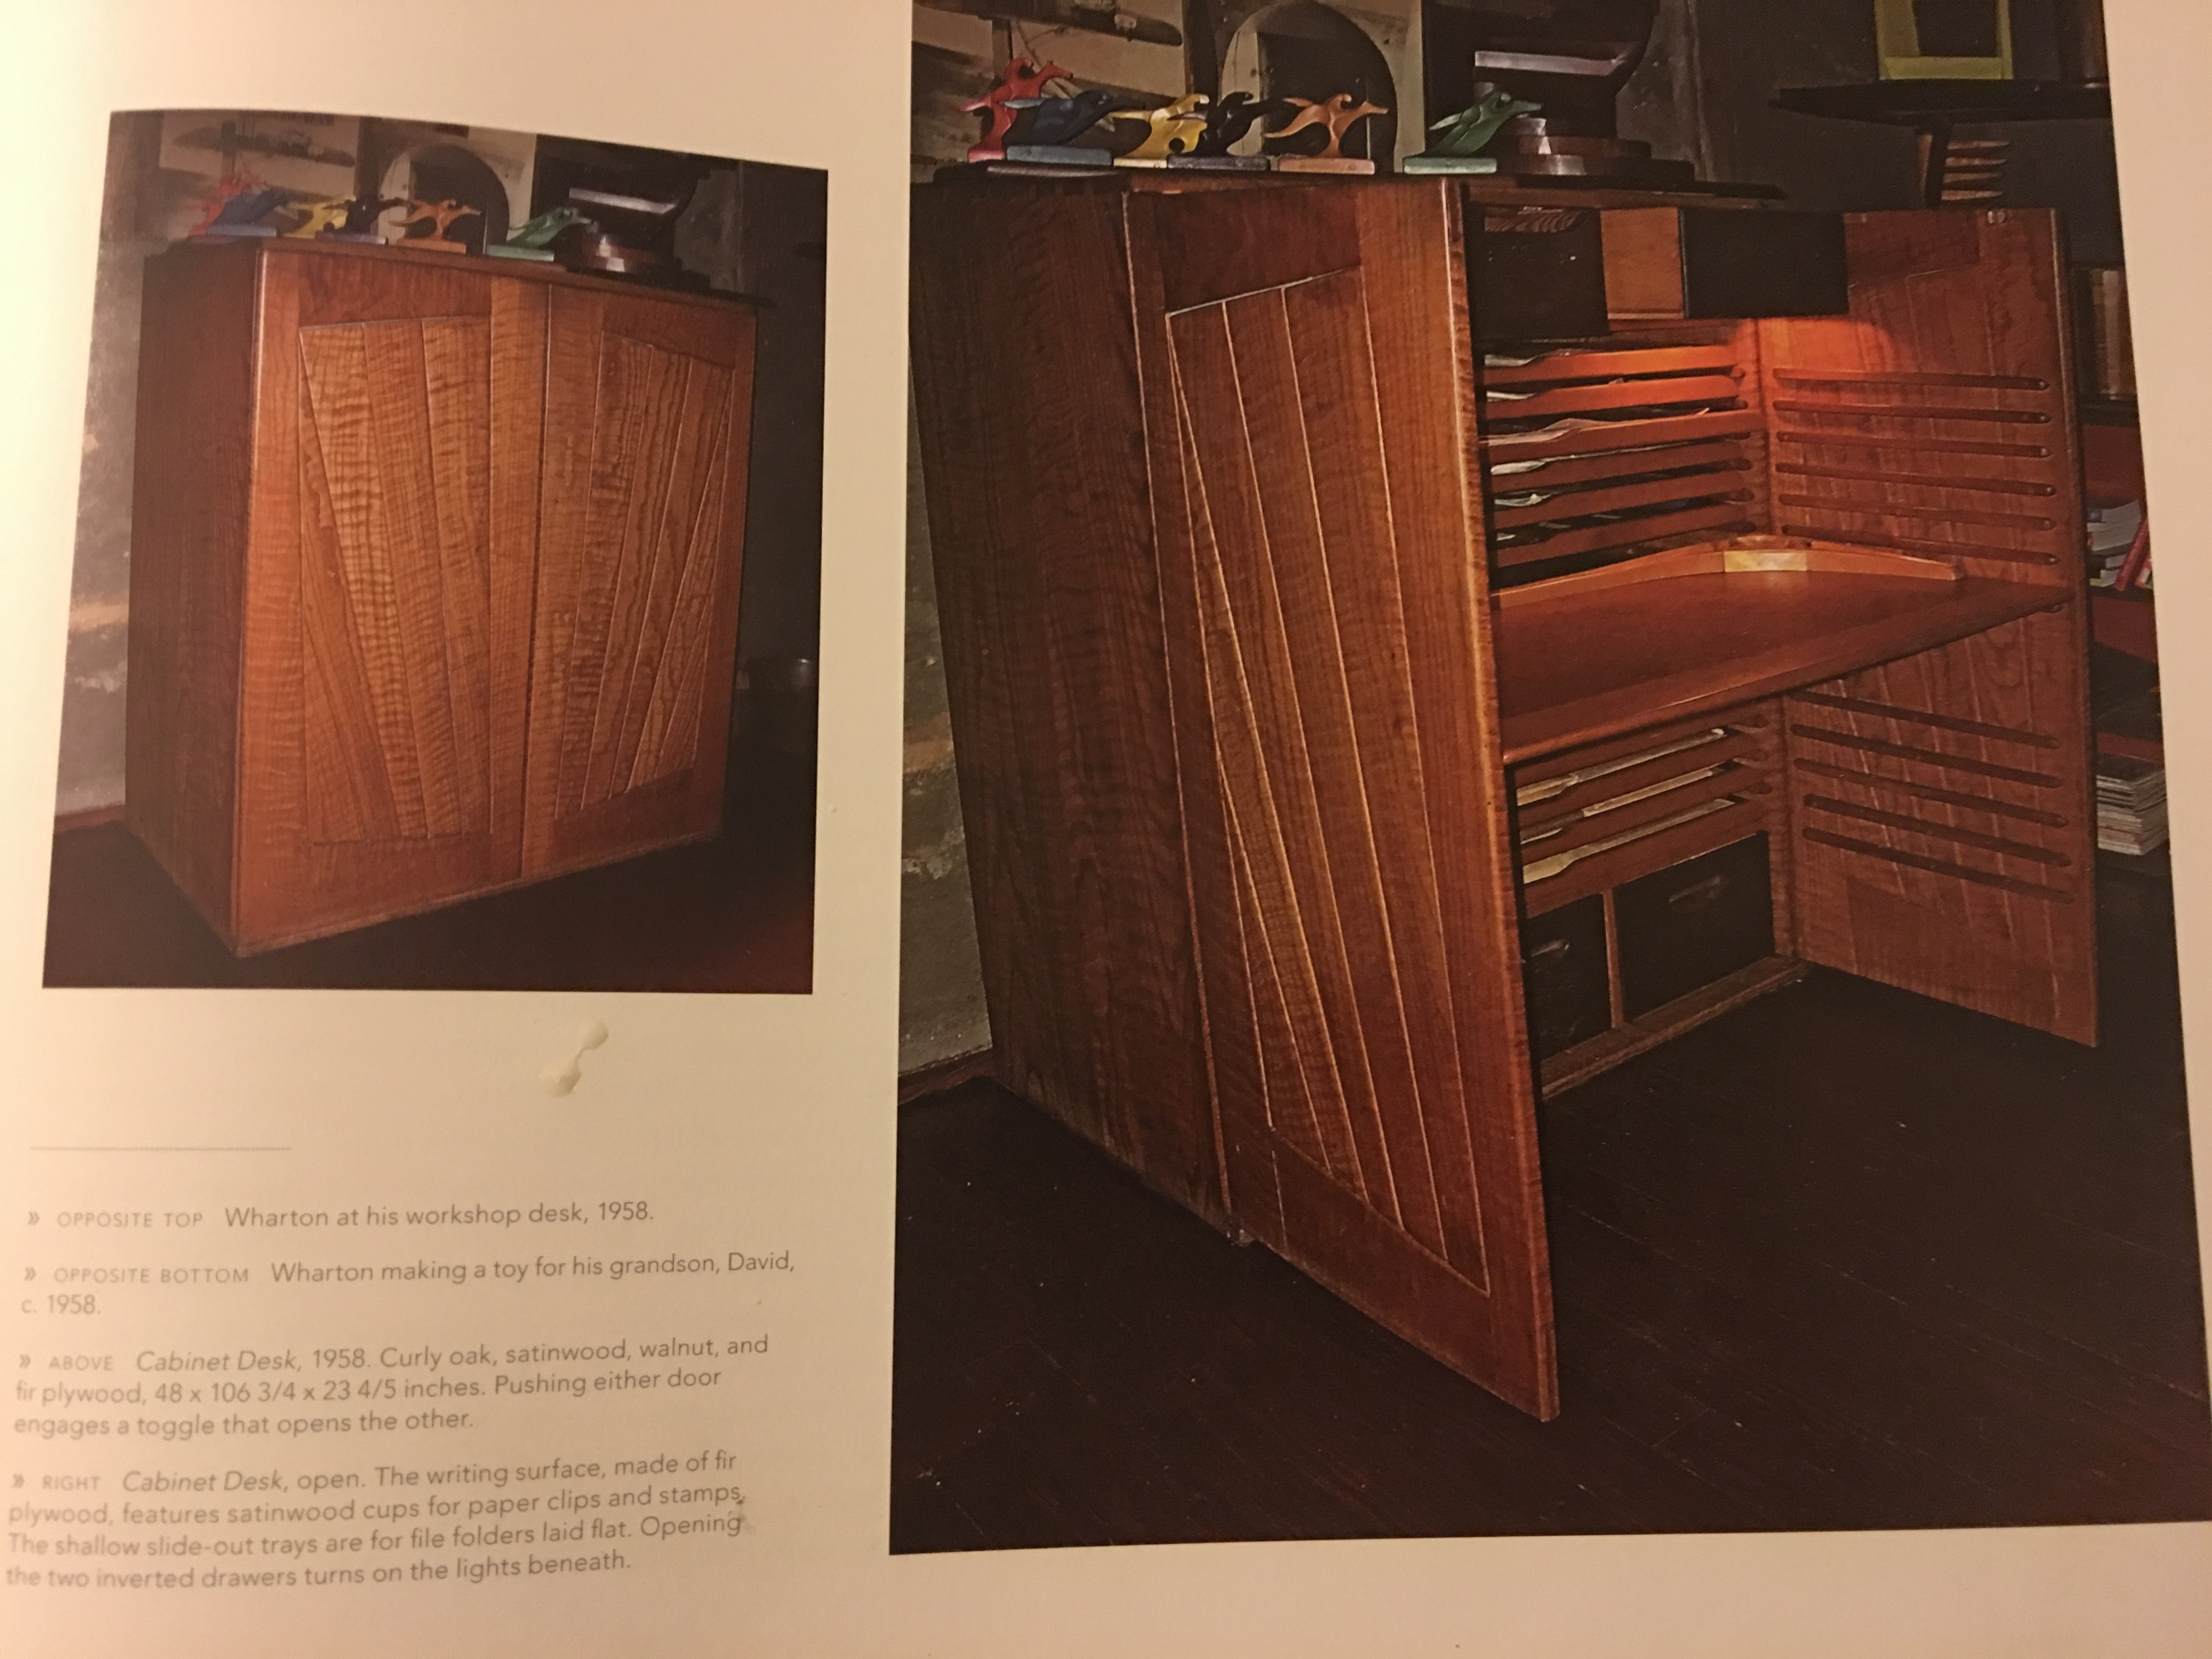 Wharton Esherick's desk that was the inspiration for the wedge pattern on the sides and really much of the shelf.